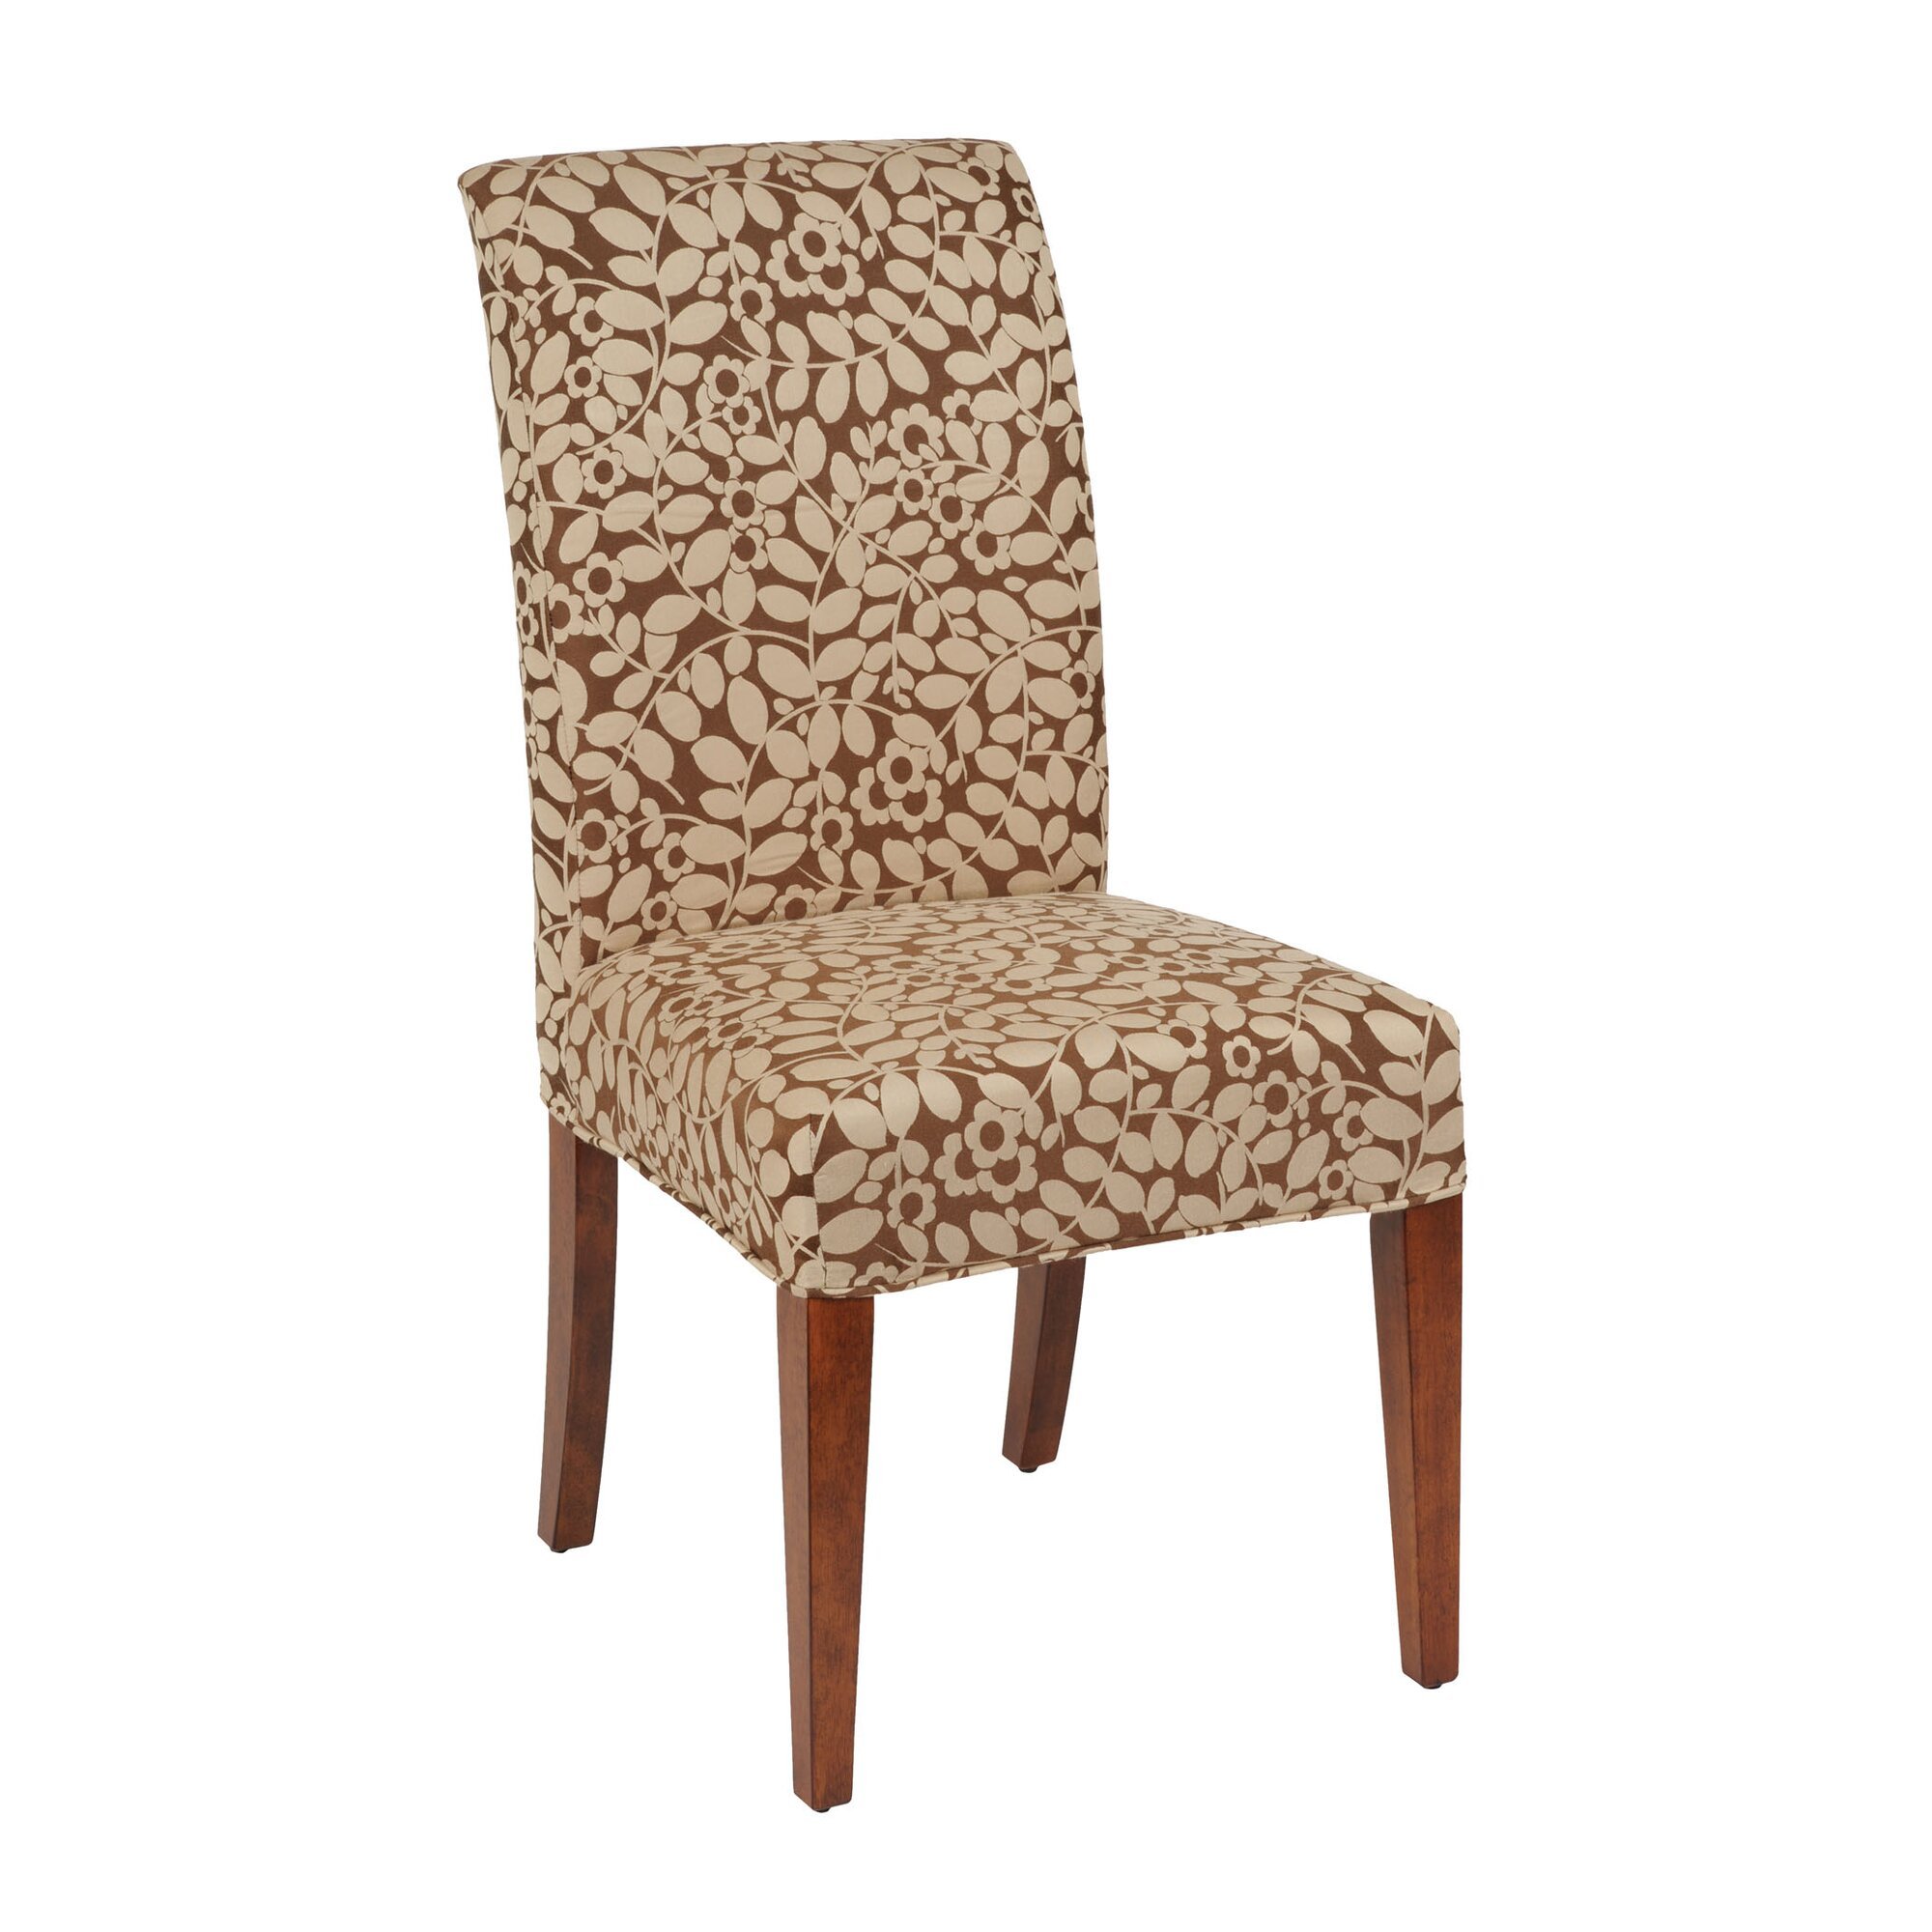 Bailey Street Couture Covers Parsons Chair Slipcover